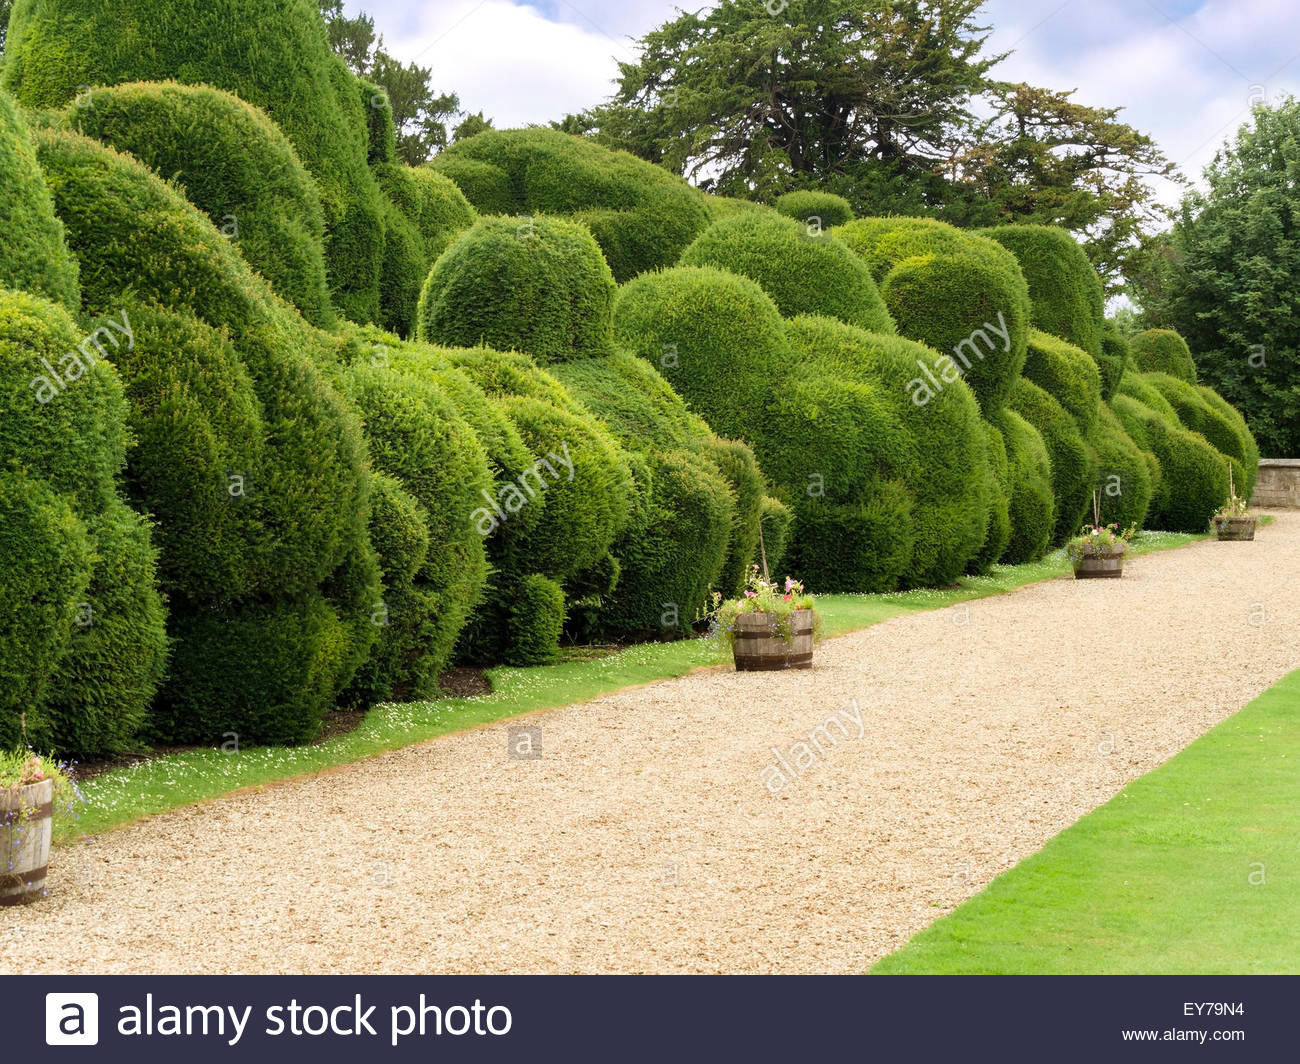 Elephant Hedge In Landscaped Gardens Of Rockingham Castle,  Northamptonshire, England, UK.